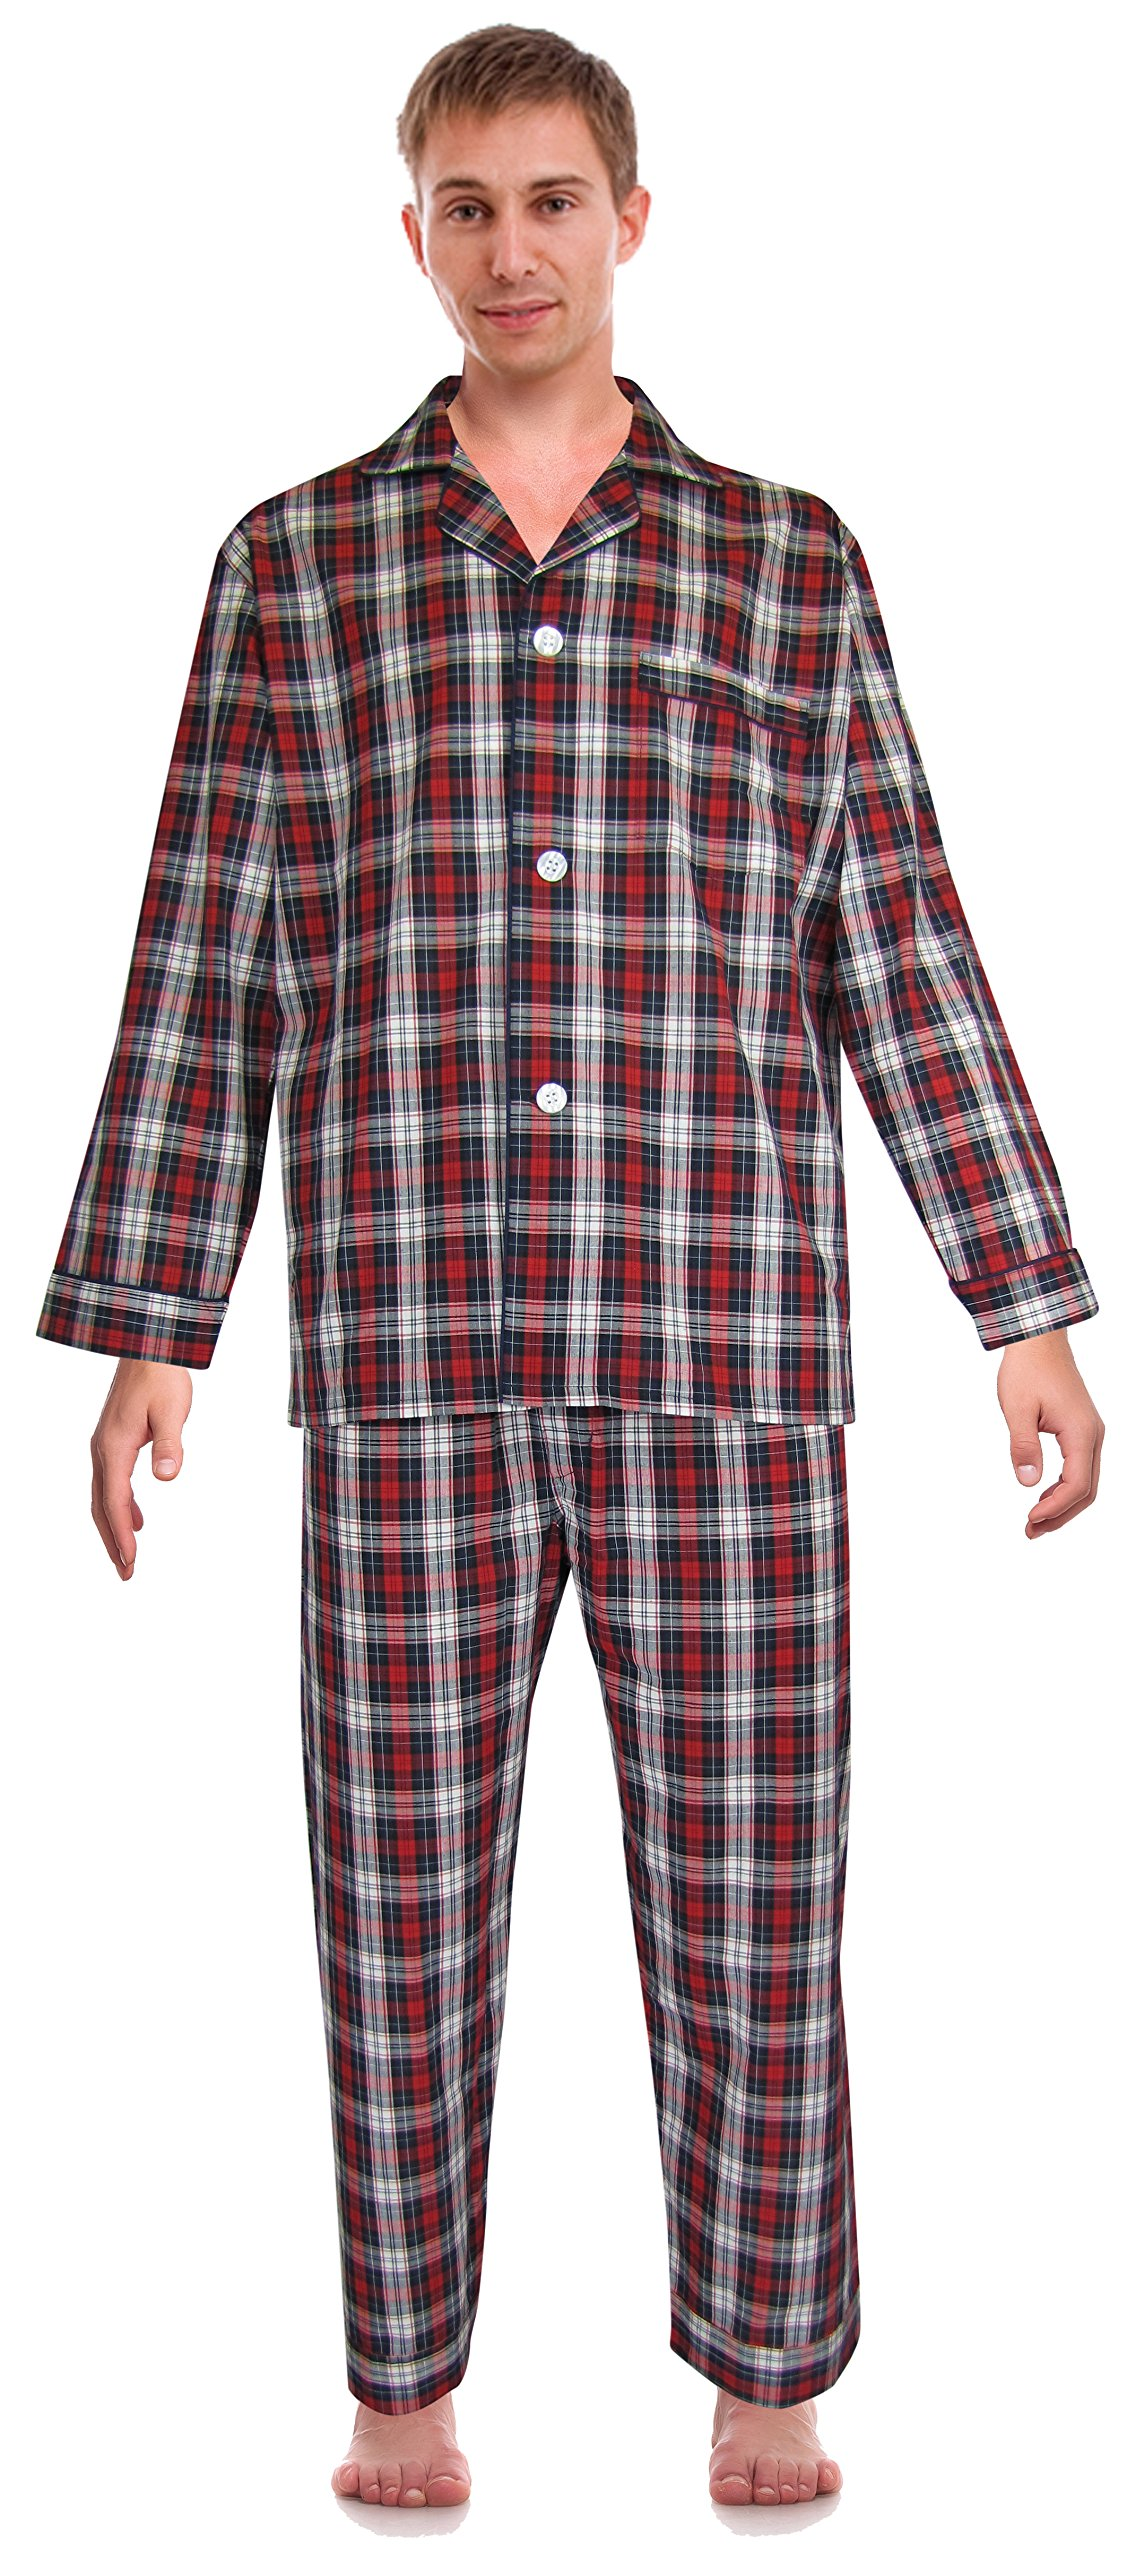 RK Classical Sleepwear Mens Broadcloth Woven Pajama Set, Size Small, Red, Plaid (0156)